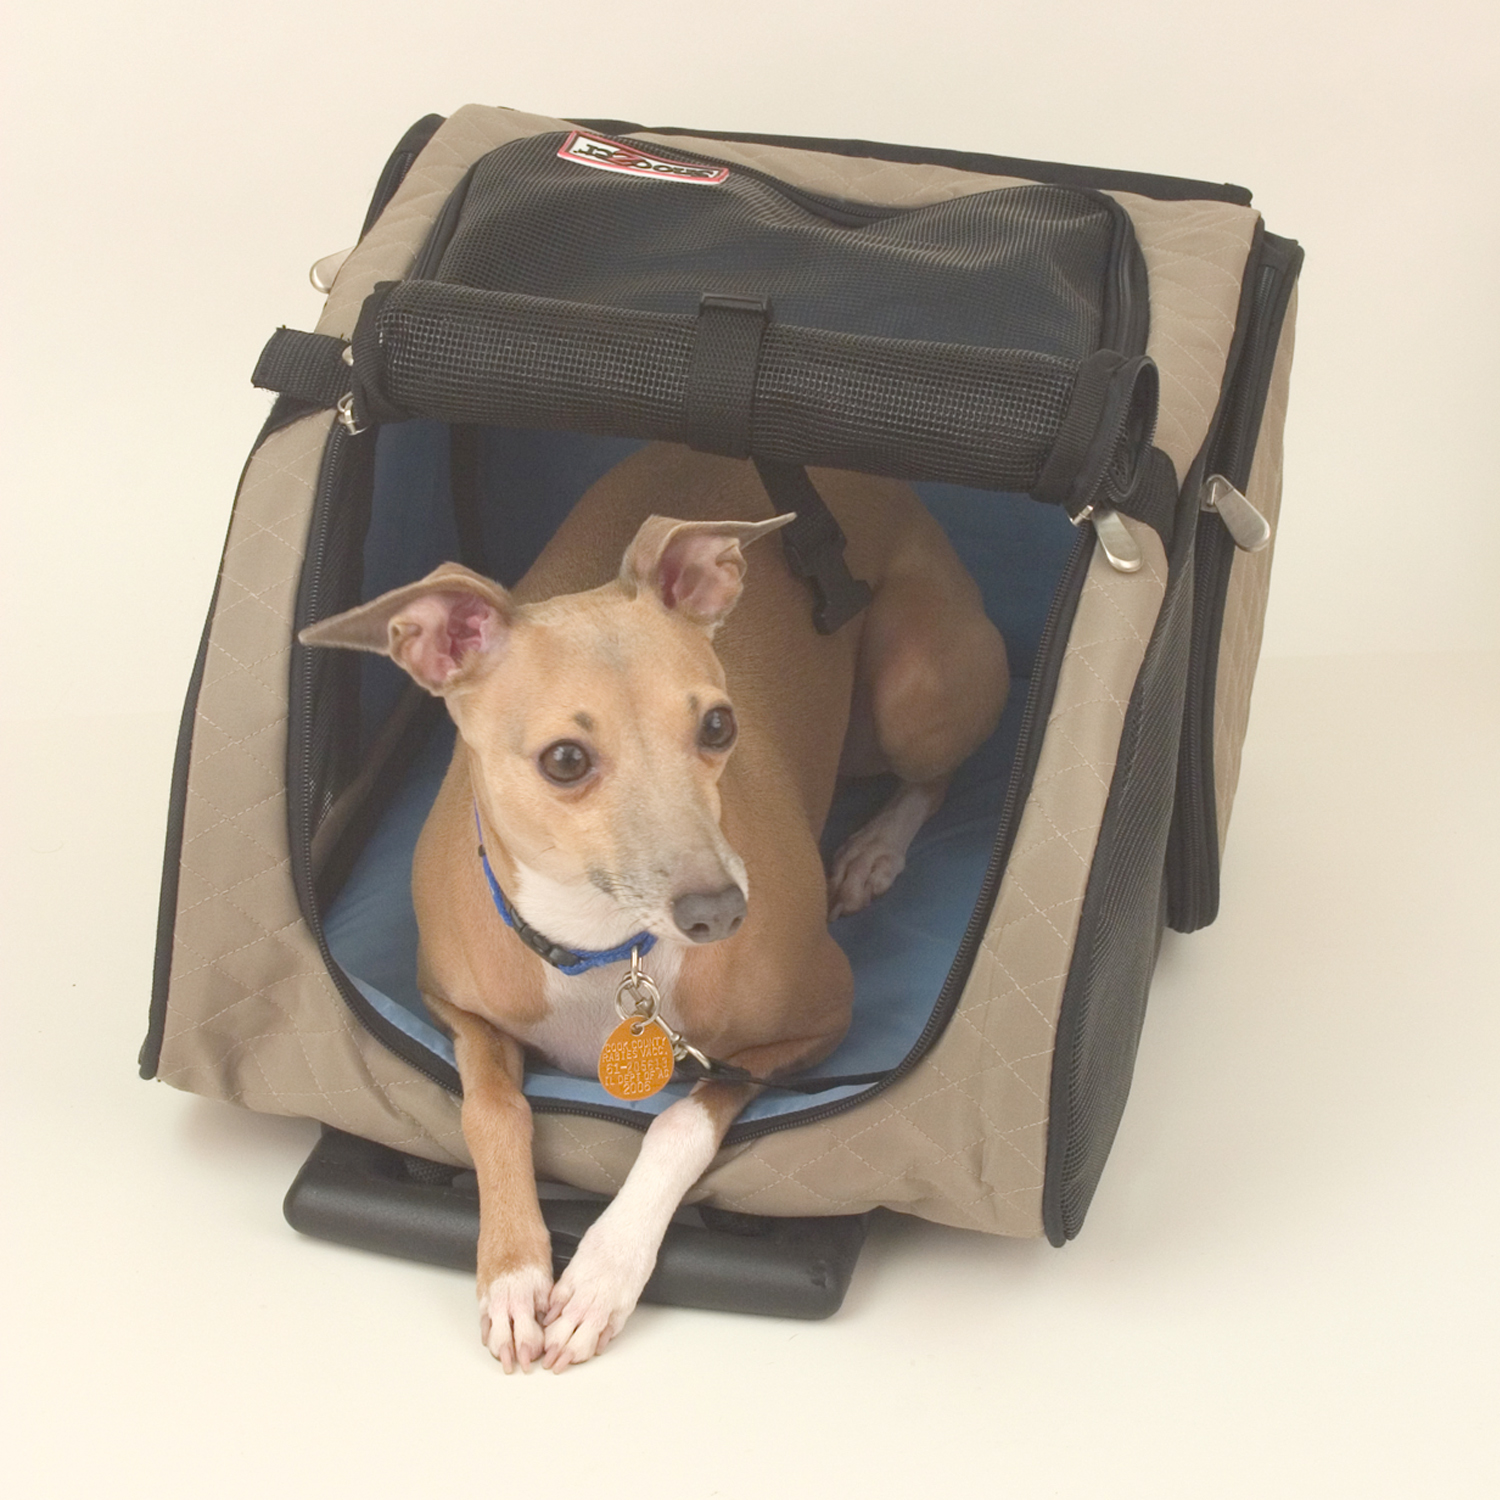 Roll Around Travel Pet Carrier - Med Khaki/blue Thumbnail Image 3